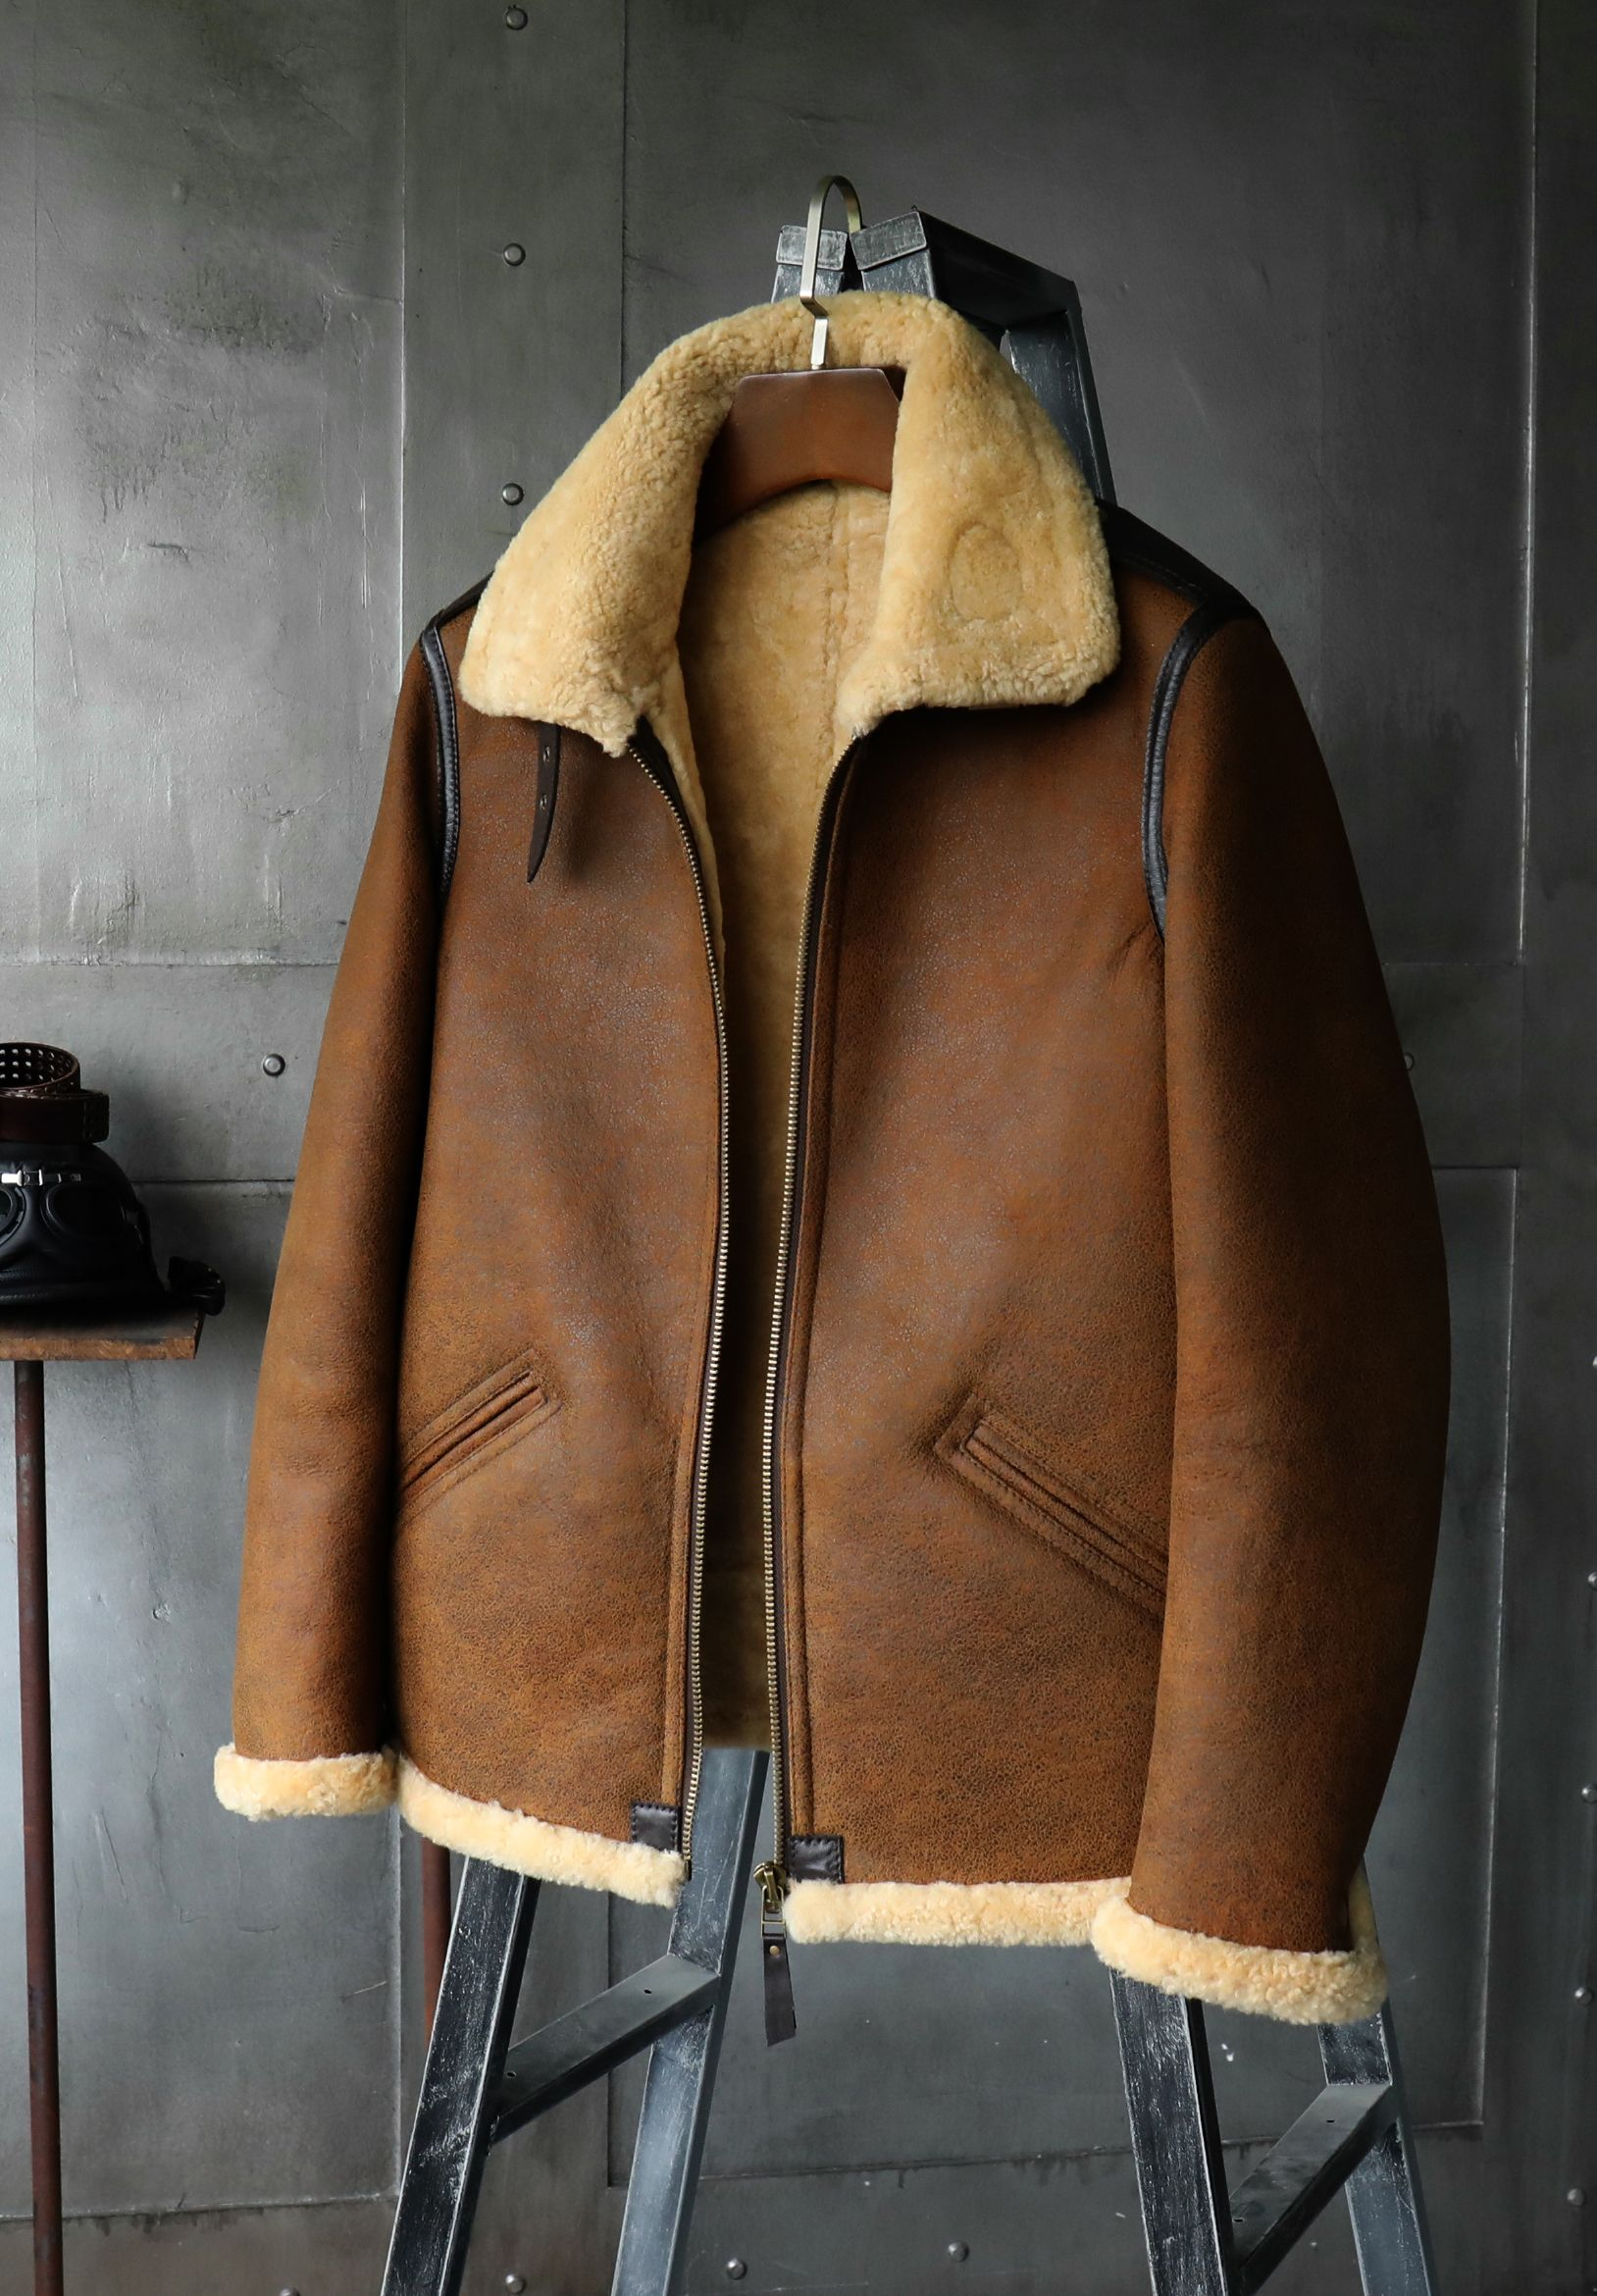 becdb86c59b B3 Men's Shearling Jacket Flight Jacket Short Fur Leather Jacket Imported  Wool From Australia Mans Sheepskin Aviator Fur Coat